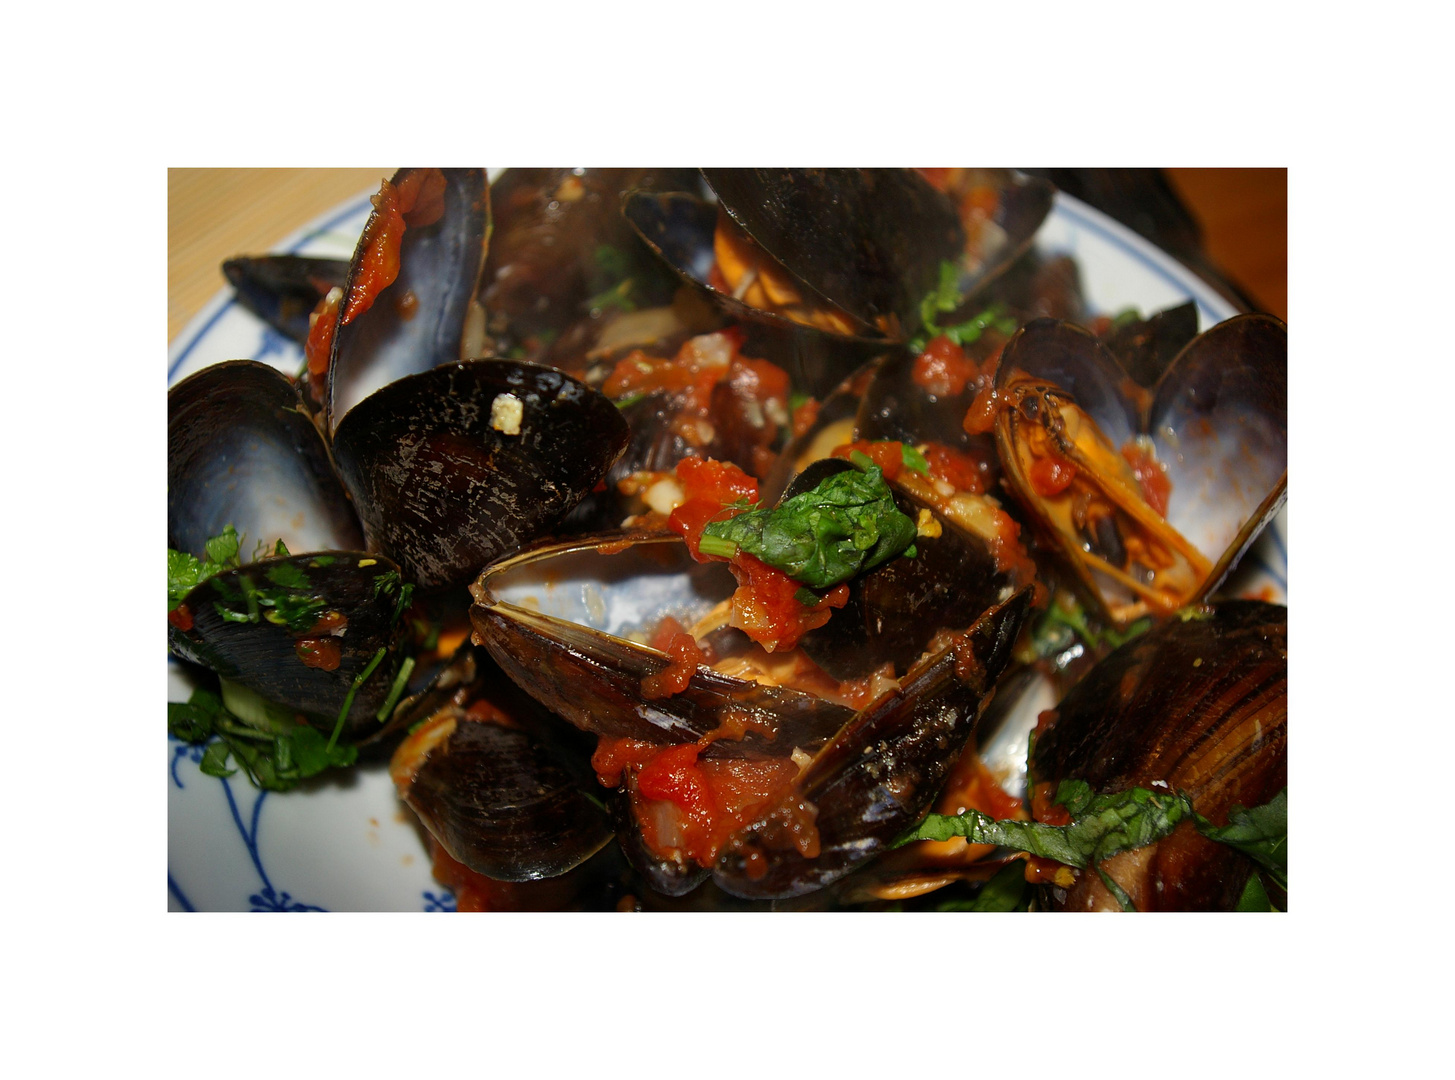 Muscheln in Tomatensauce (frz. Moules sauce tomate')